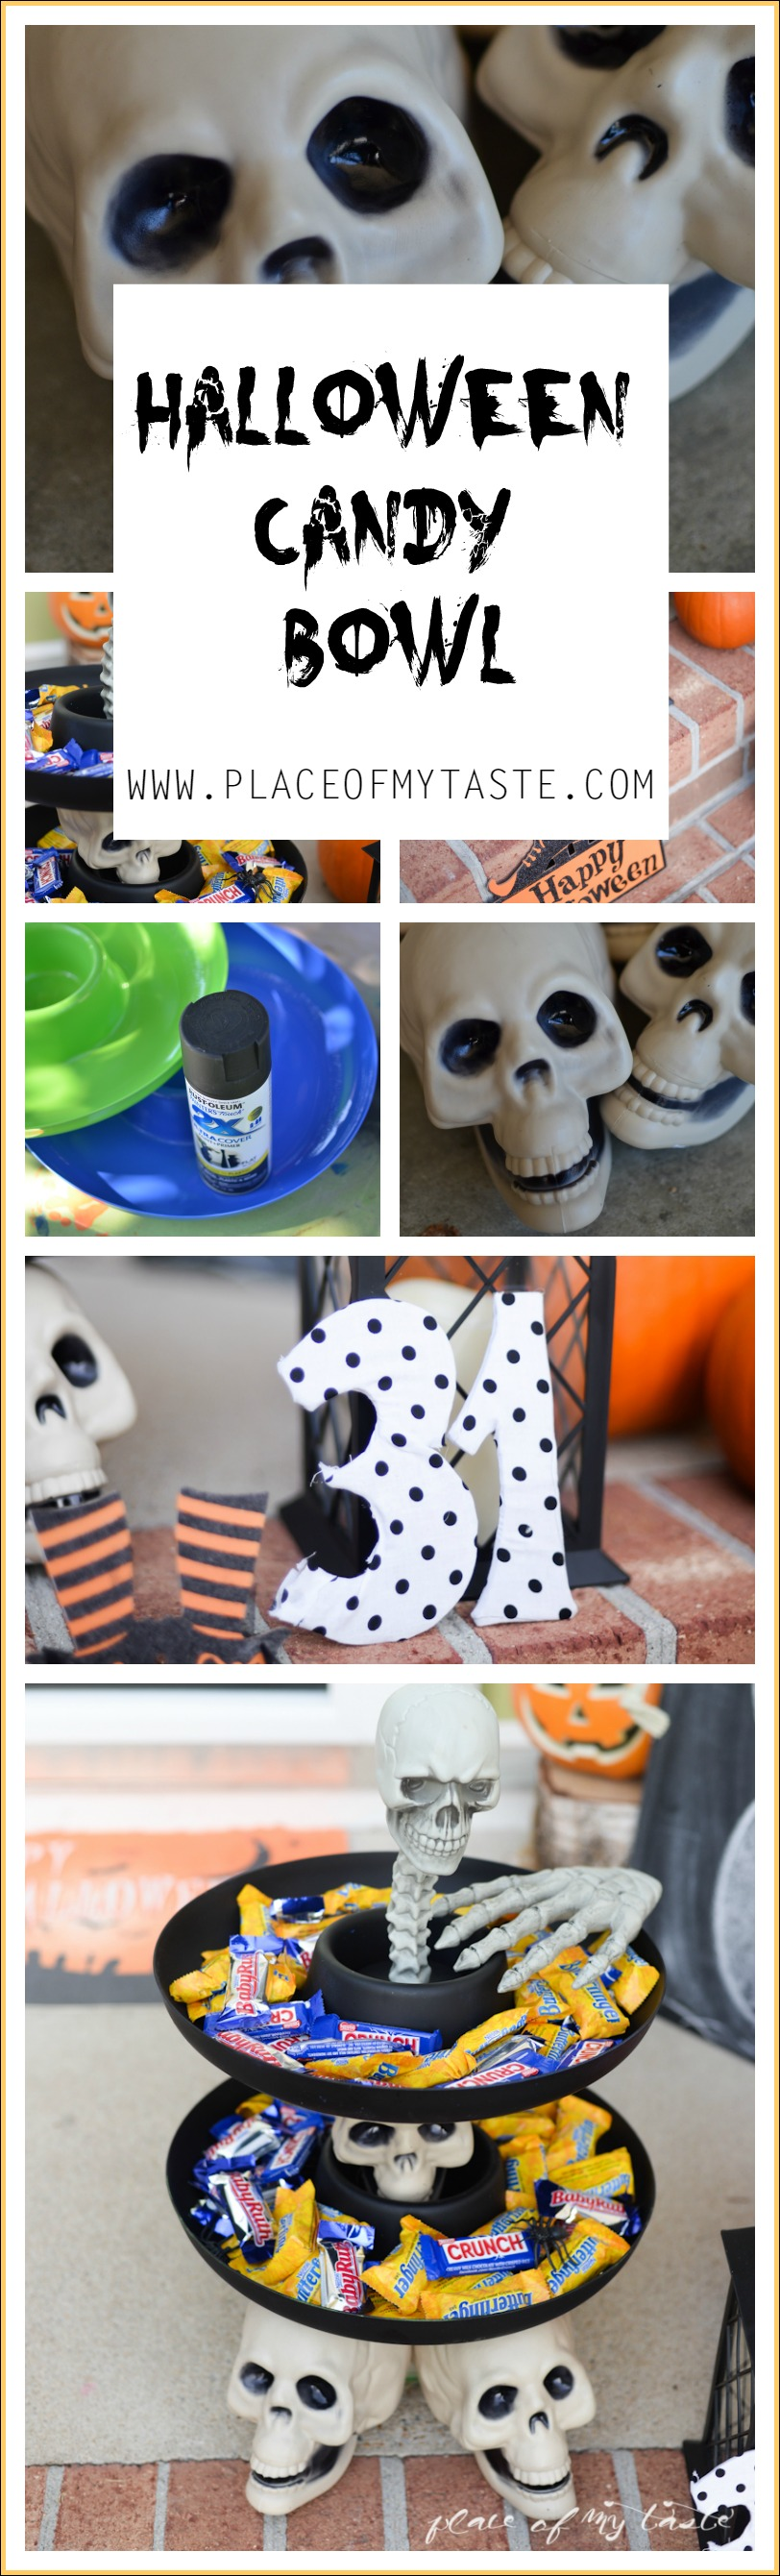 HALLOWEEN CANDY BOWL - Placeofmytaste.com #treats4all #shop